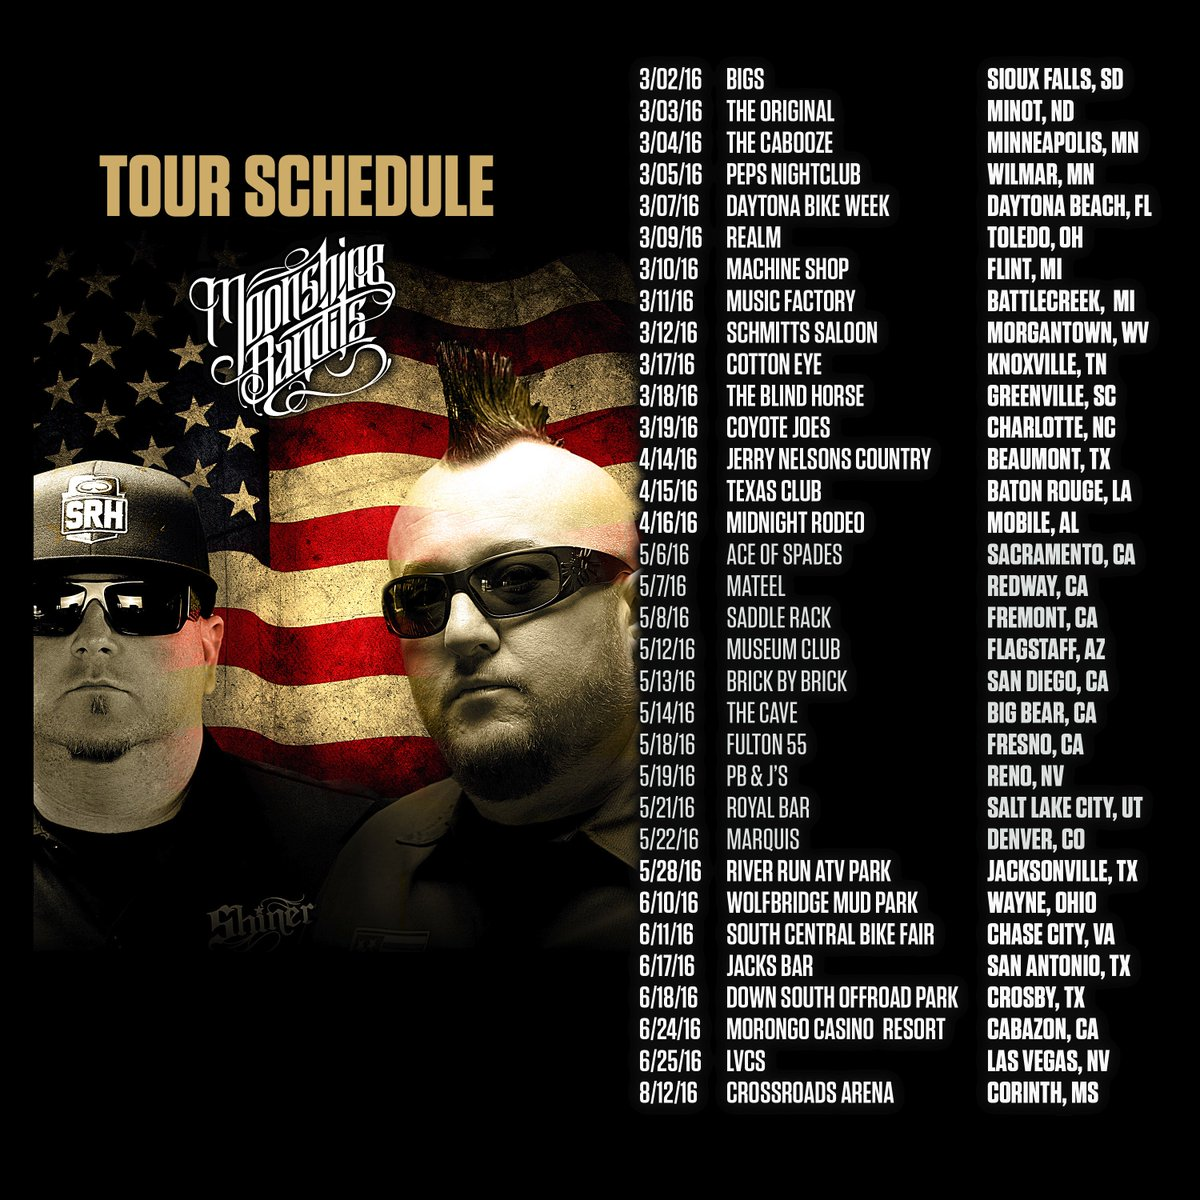 All of our 2016 Shows...More being Added.  All Across America. Hoping to Add Australia and Canada. https://t.co/TvZ8Yl81PM